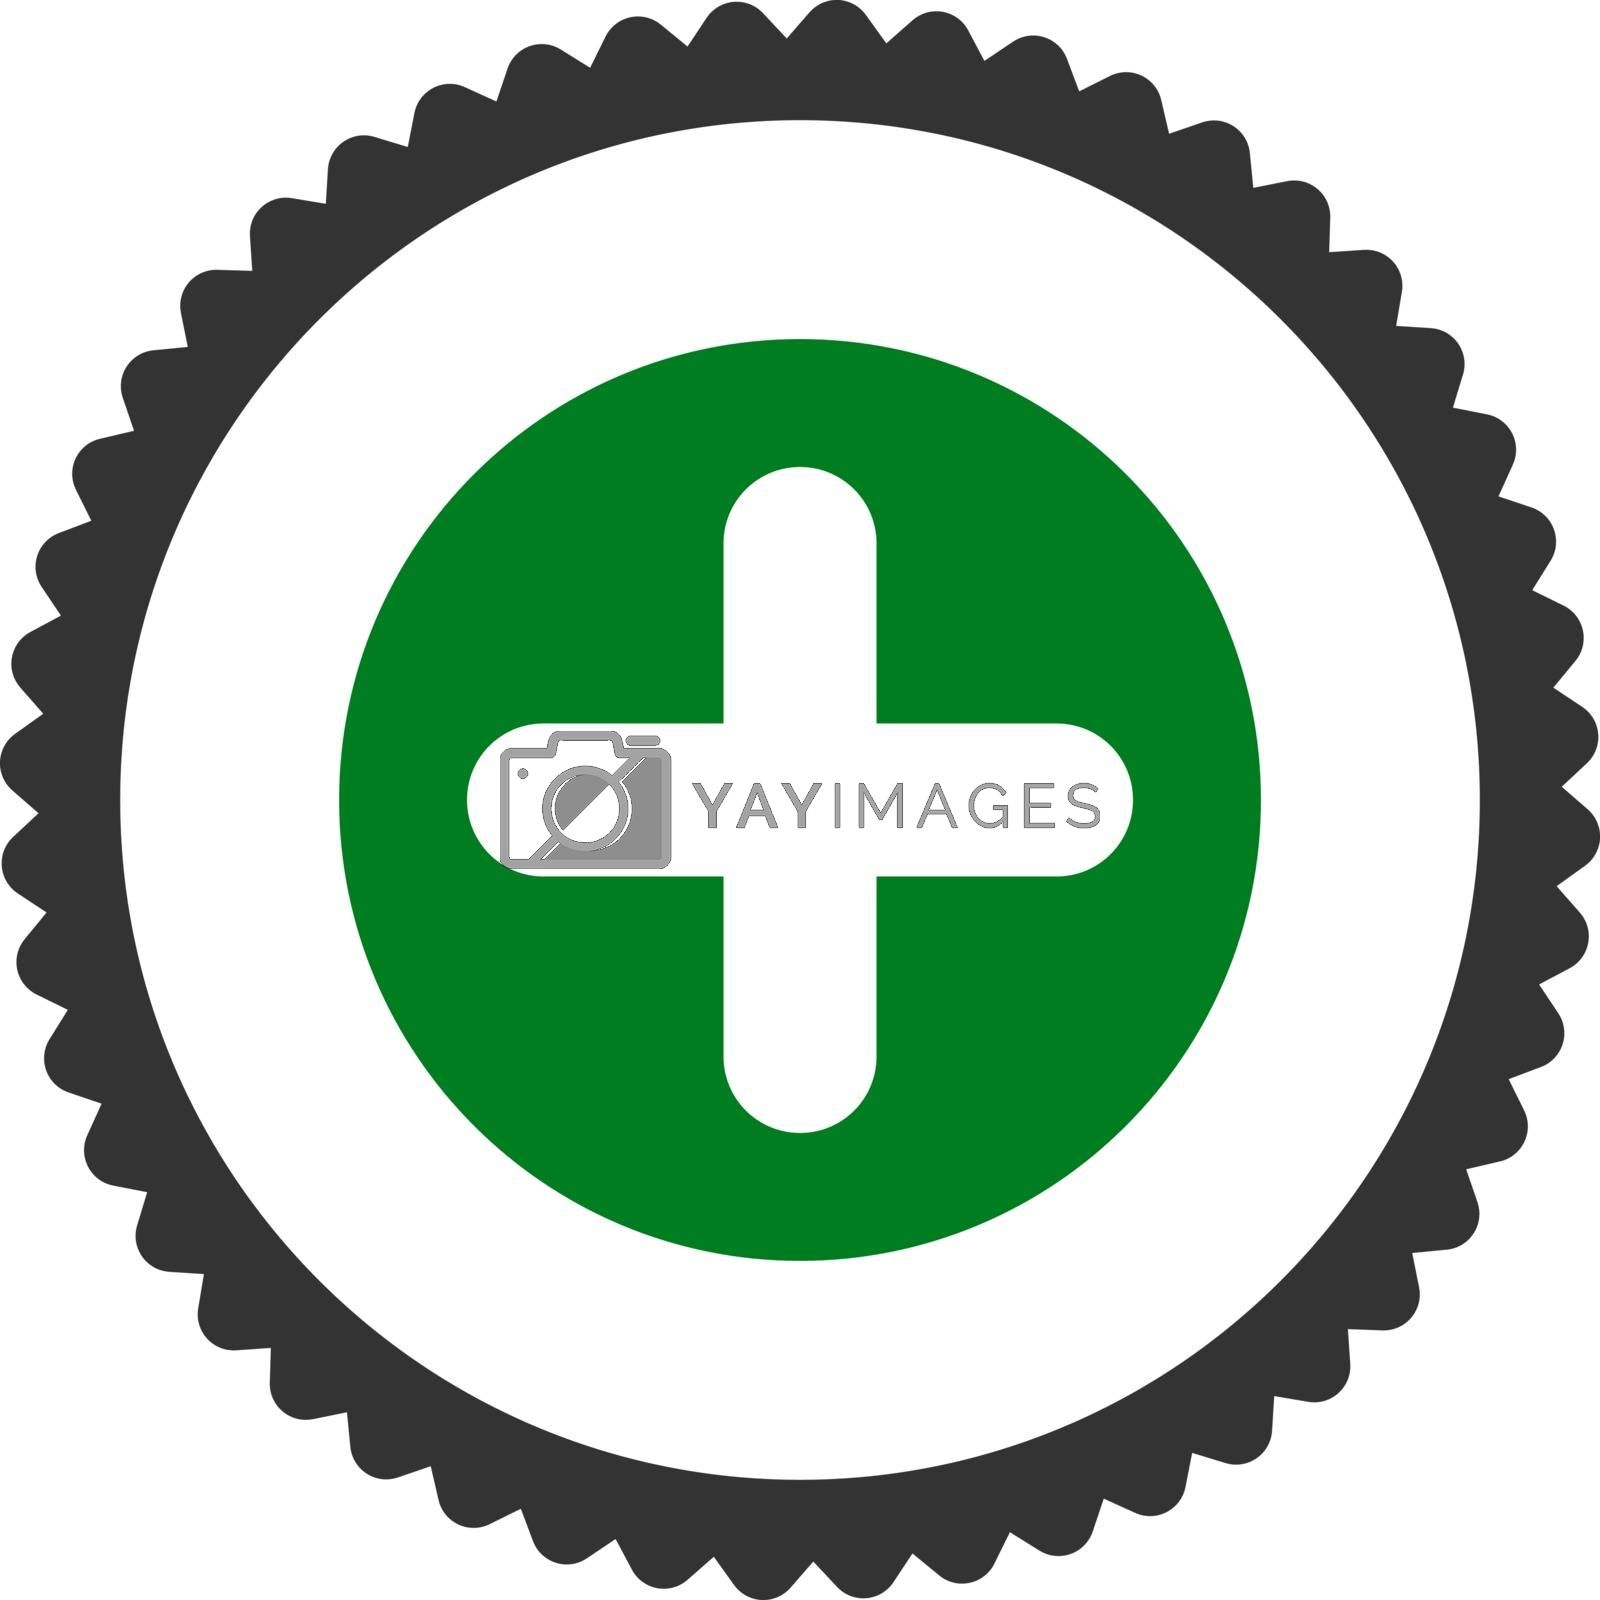 Create flat green and gray colors round stamp icon by Aha-Soft